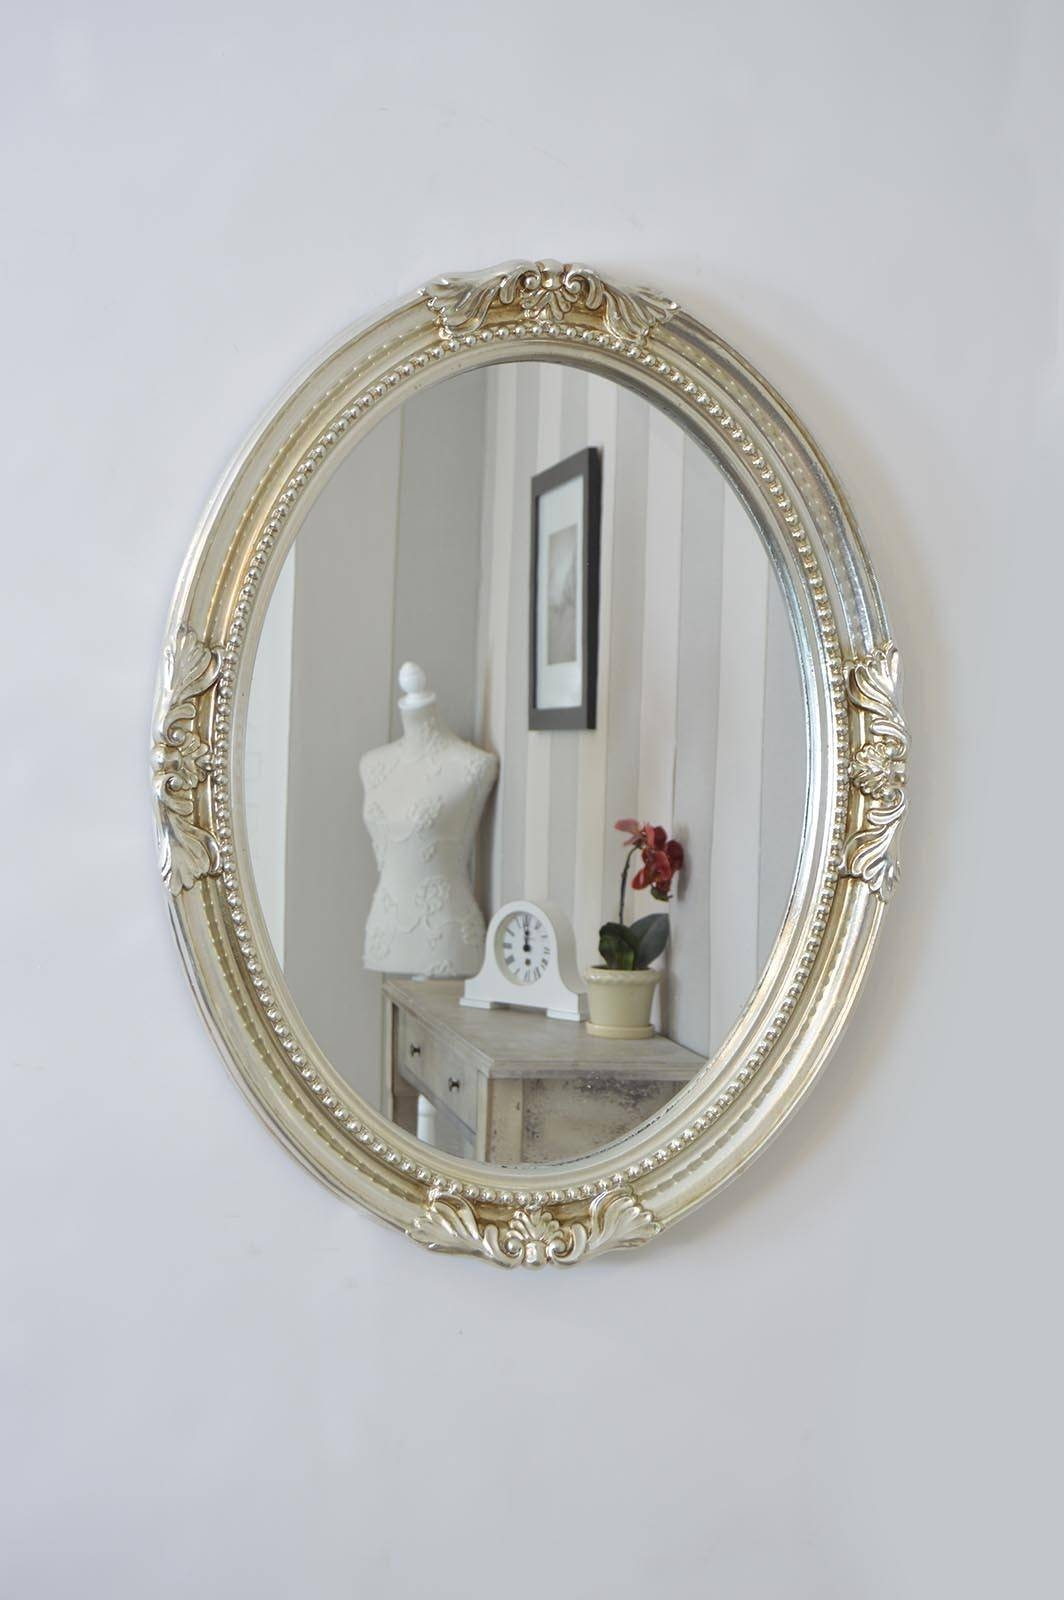 5 Tips For Best Choices Of Oval Wall Mirror - Interior Design inside Silver Oval Wall Mirrors (Image 1 of 25)